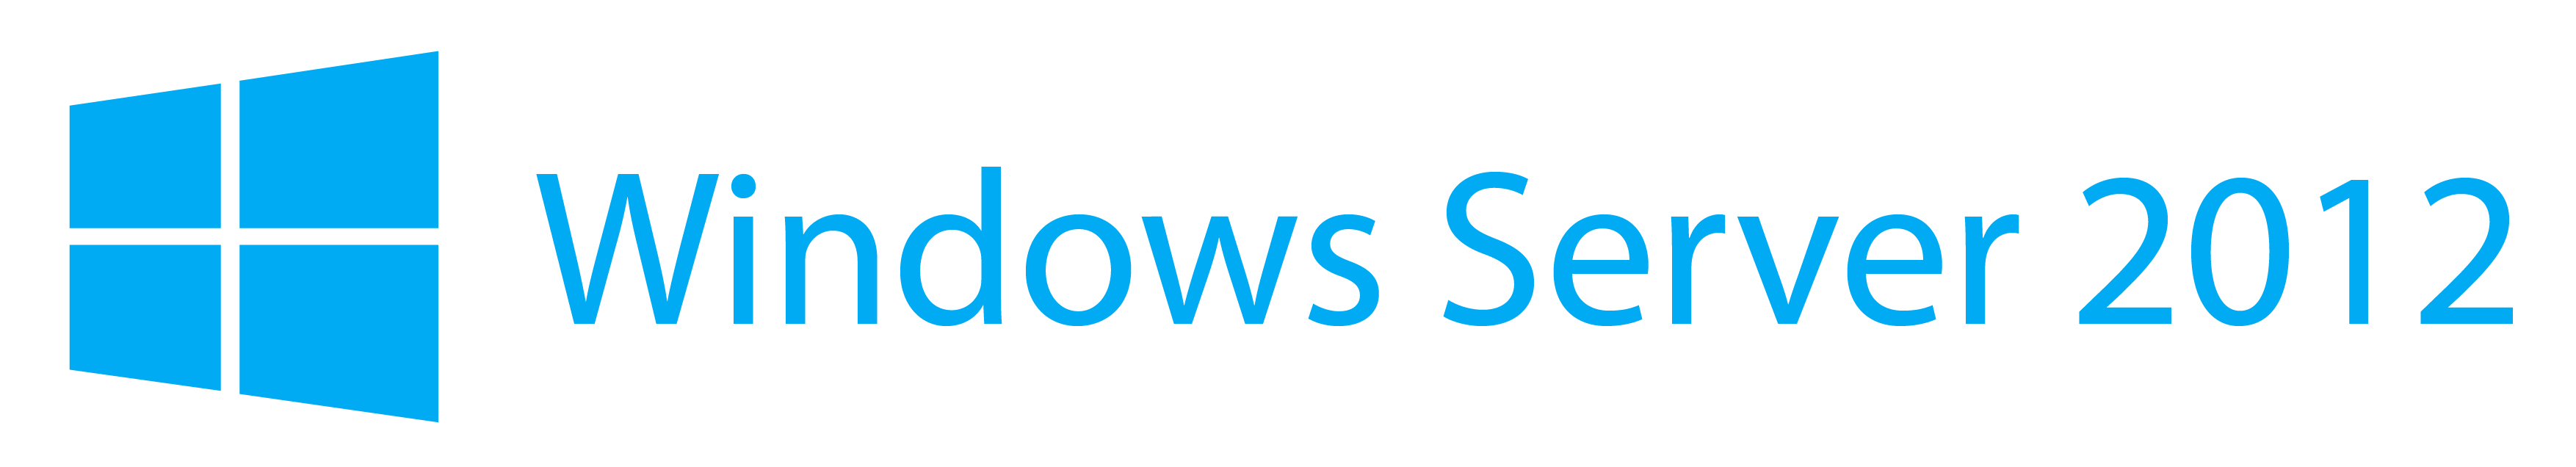 Examforce releases exam preparation for microsoft 70 412 examforce releases exam preparation for microsoft 70 412 configuring advanced windows server 2012 services exam xflitez Image collections